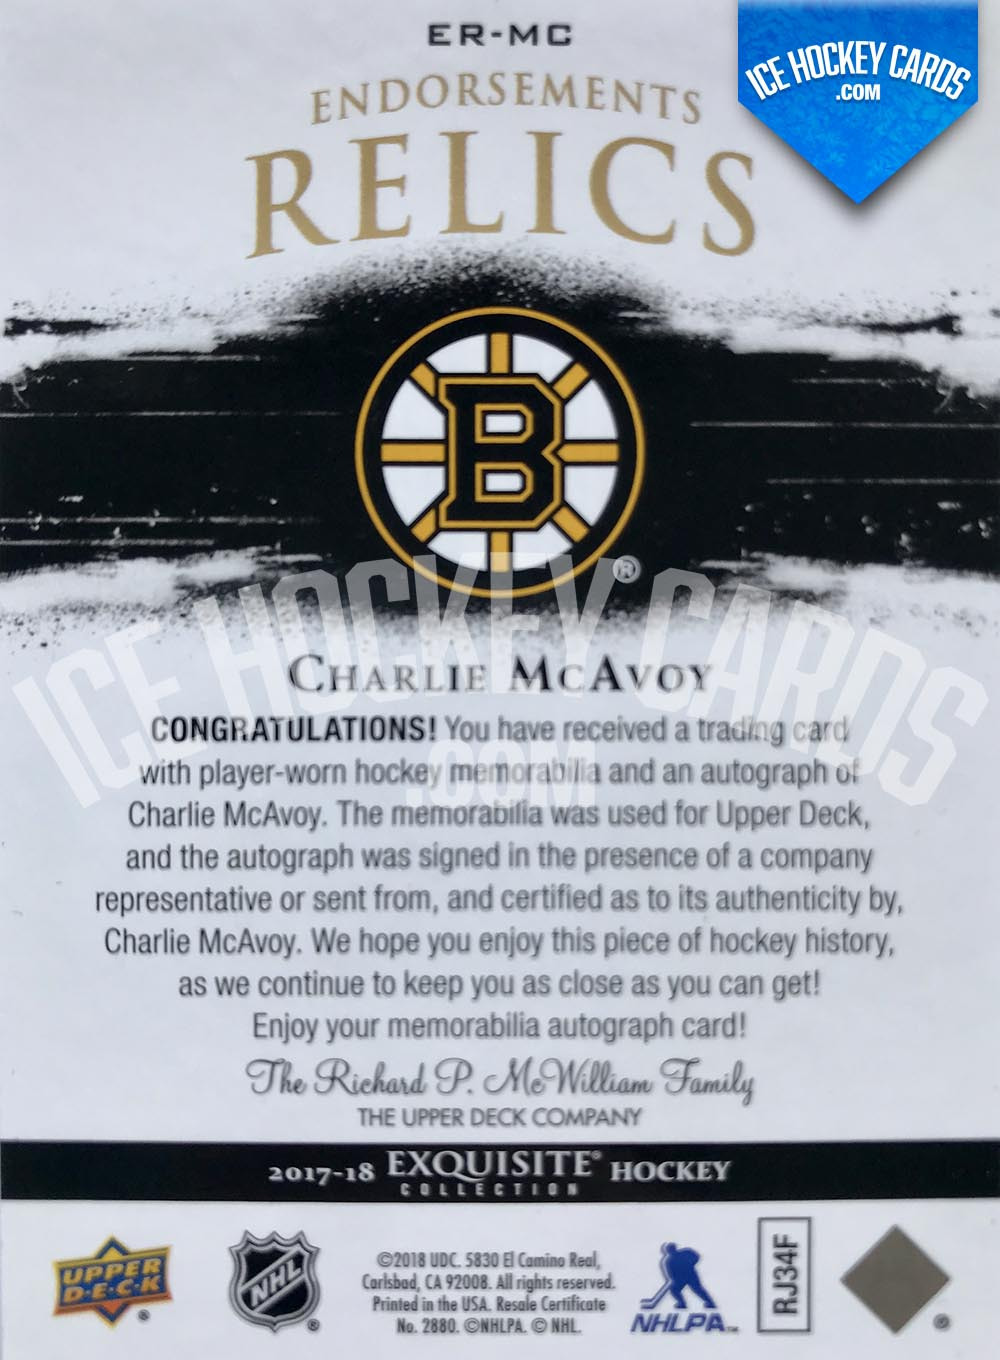 Upper Deck - Exquisite Collection 2017-18 - Charlie McAvoy Endorsements Relics Auto Patch Card # to 50 back